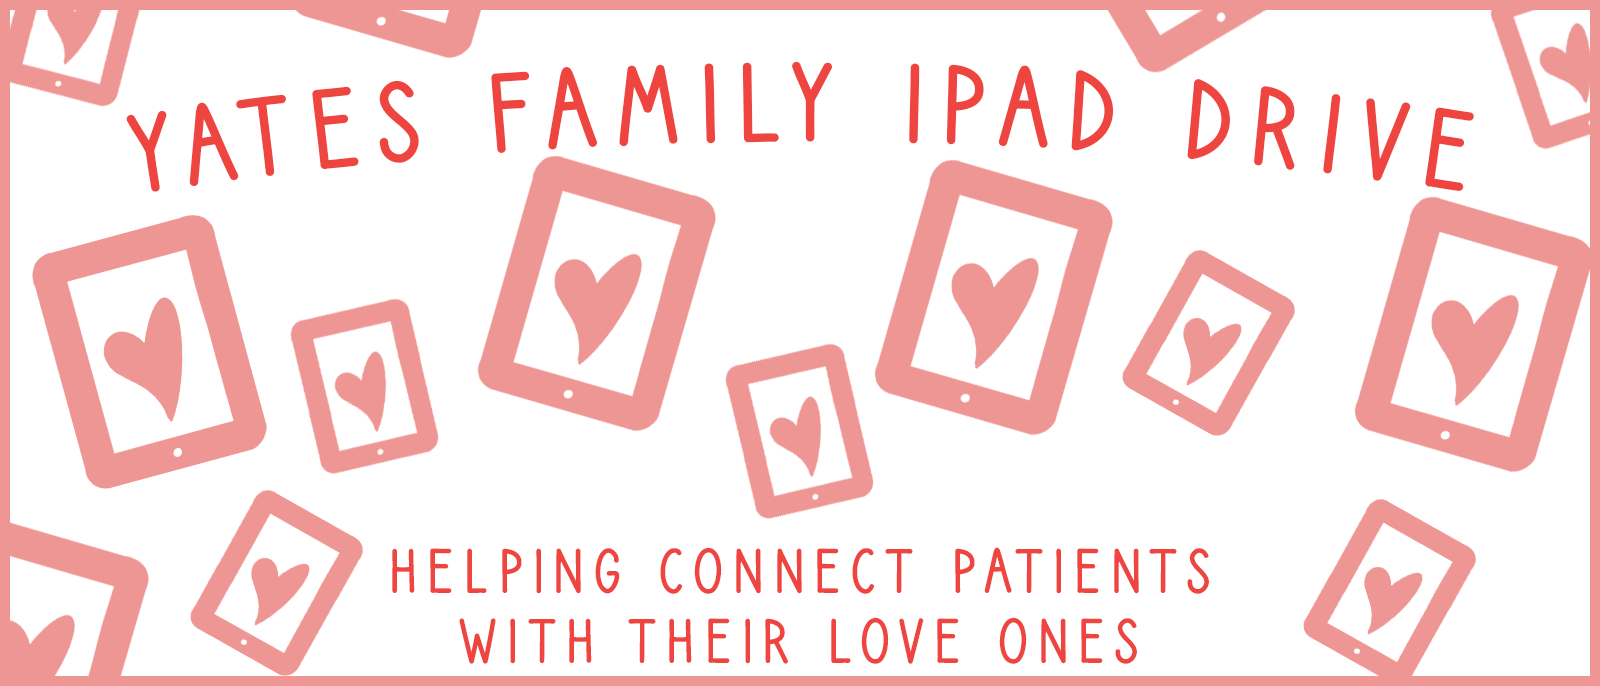 Yates Family iPad Drive - Helping Connect Patients with their love ones